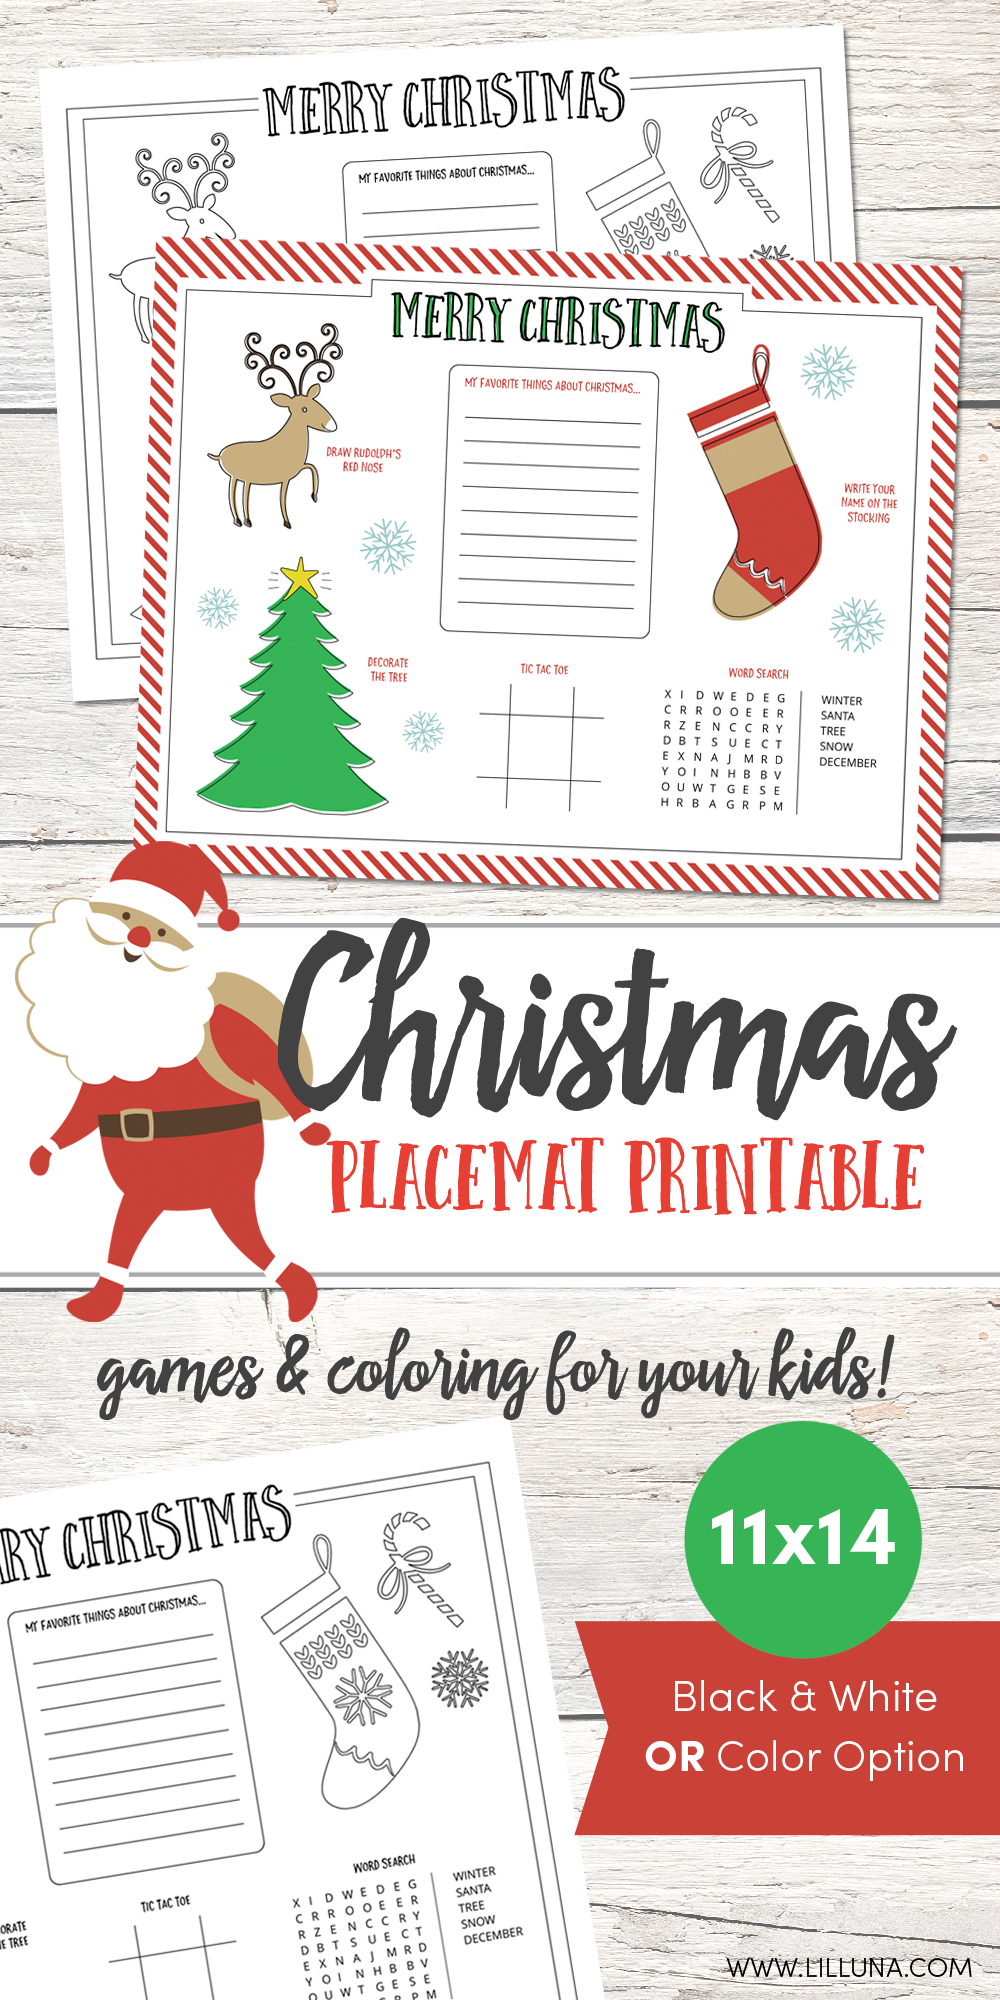 Christmas Placemat Printable - Lil' Luna - Free Printable Christmas Placemats For Adults